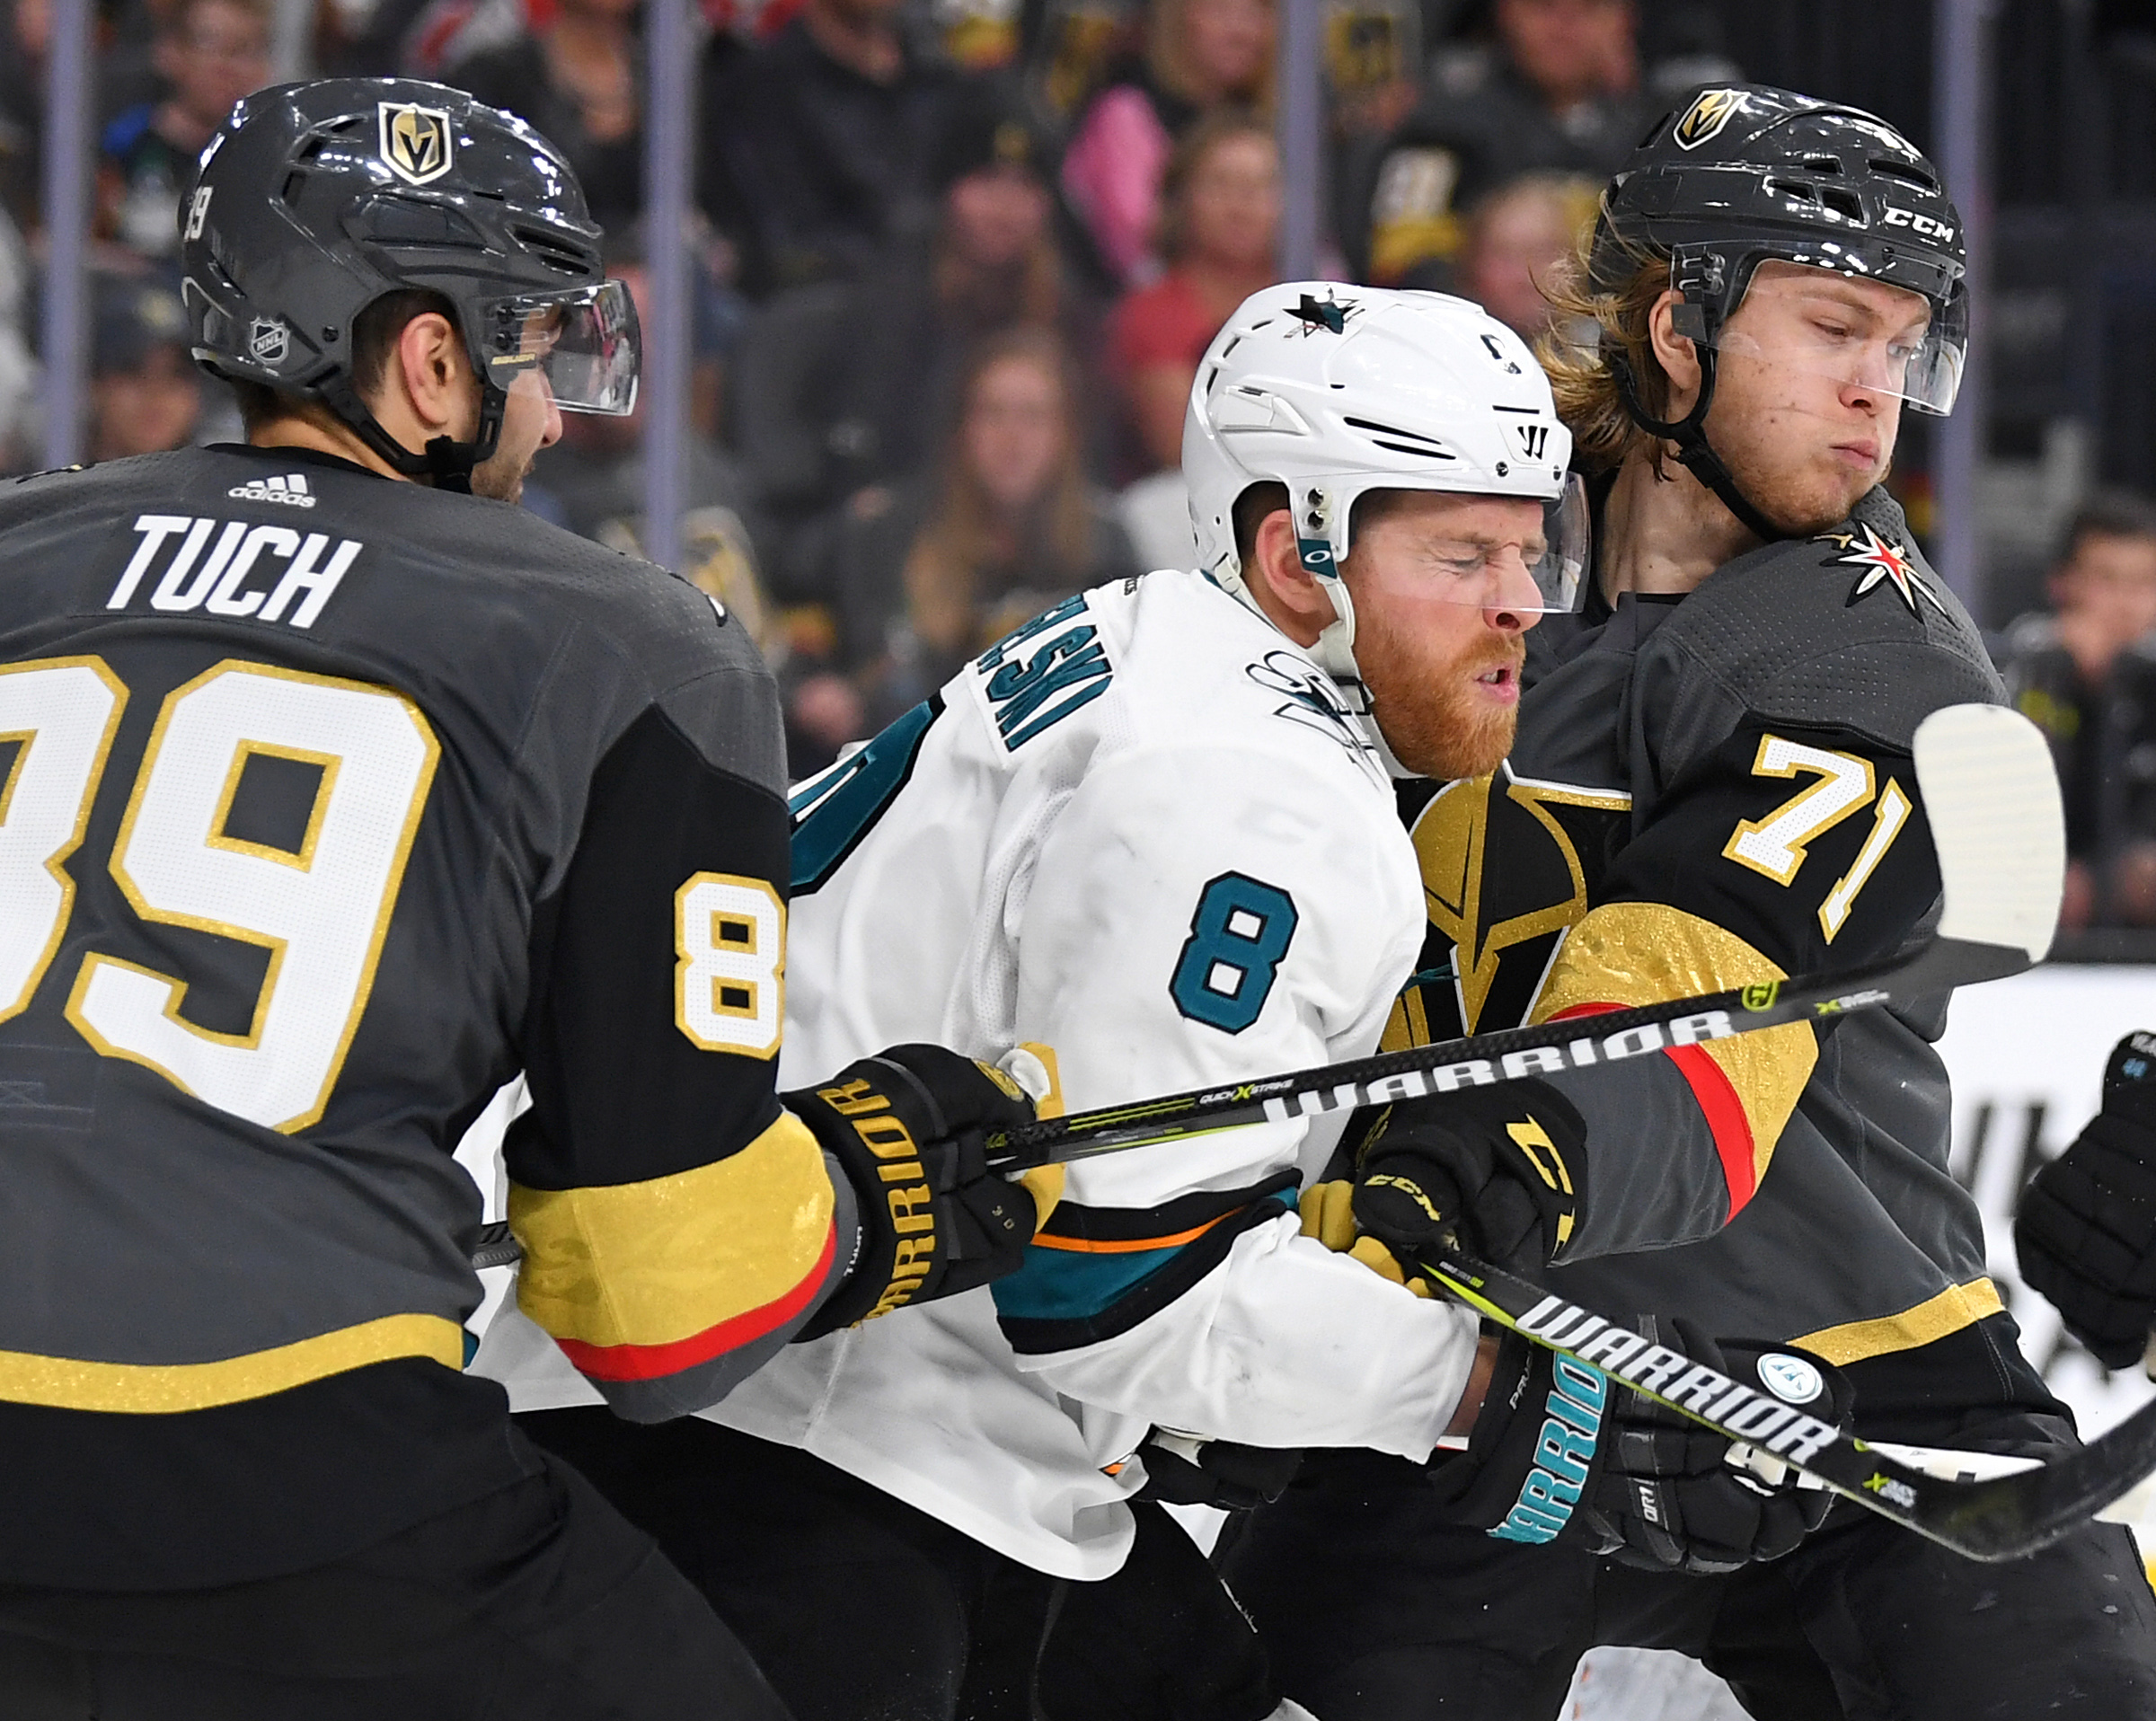 Mar 31, 2018; Las Vegas, NV, USA; San Jose Sharks center Joe Pavelski (8) is checked by Vegas Golden Knights center William Karlsson (71) and right wing Alex Tuch (89) during the third period at T-Mobile Arena.